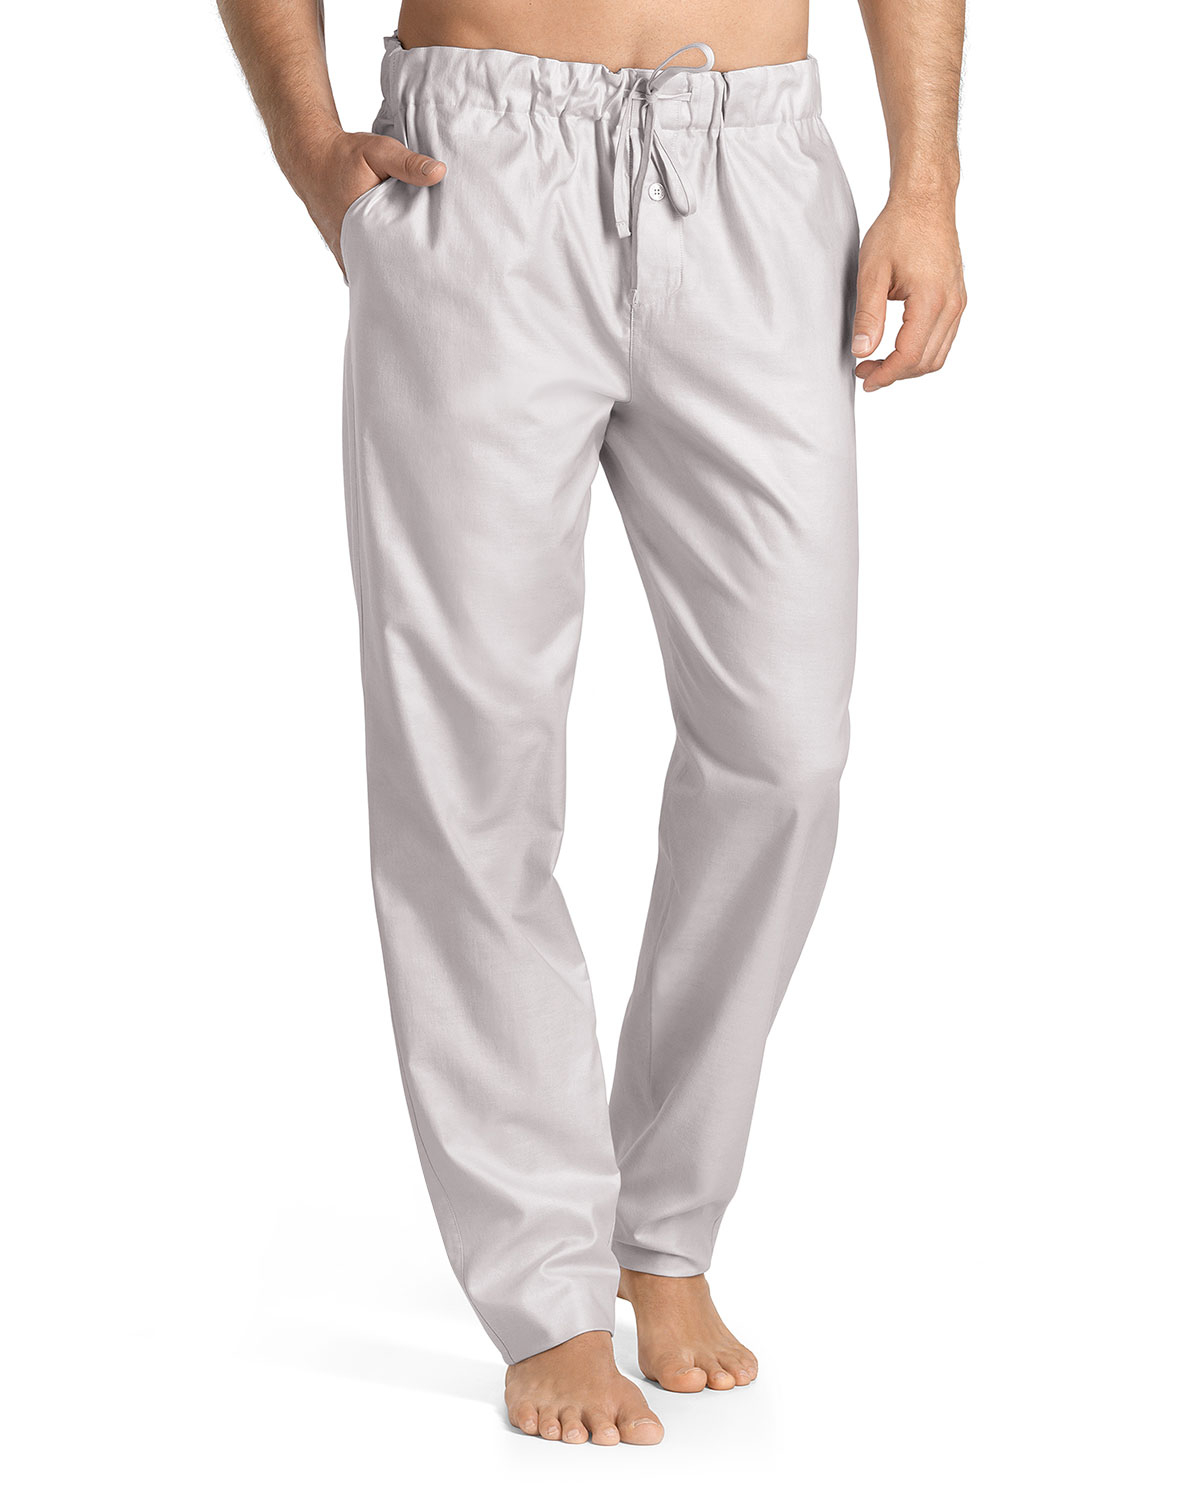 Free shipping BOTH ways on lounge pants for men, from our vast selection of styles. Fast delivery, and 24/7/ real-person service with a smile. Click or call